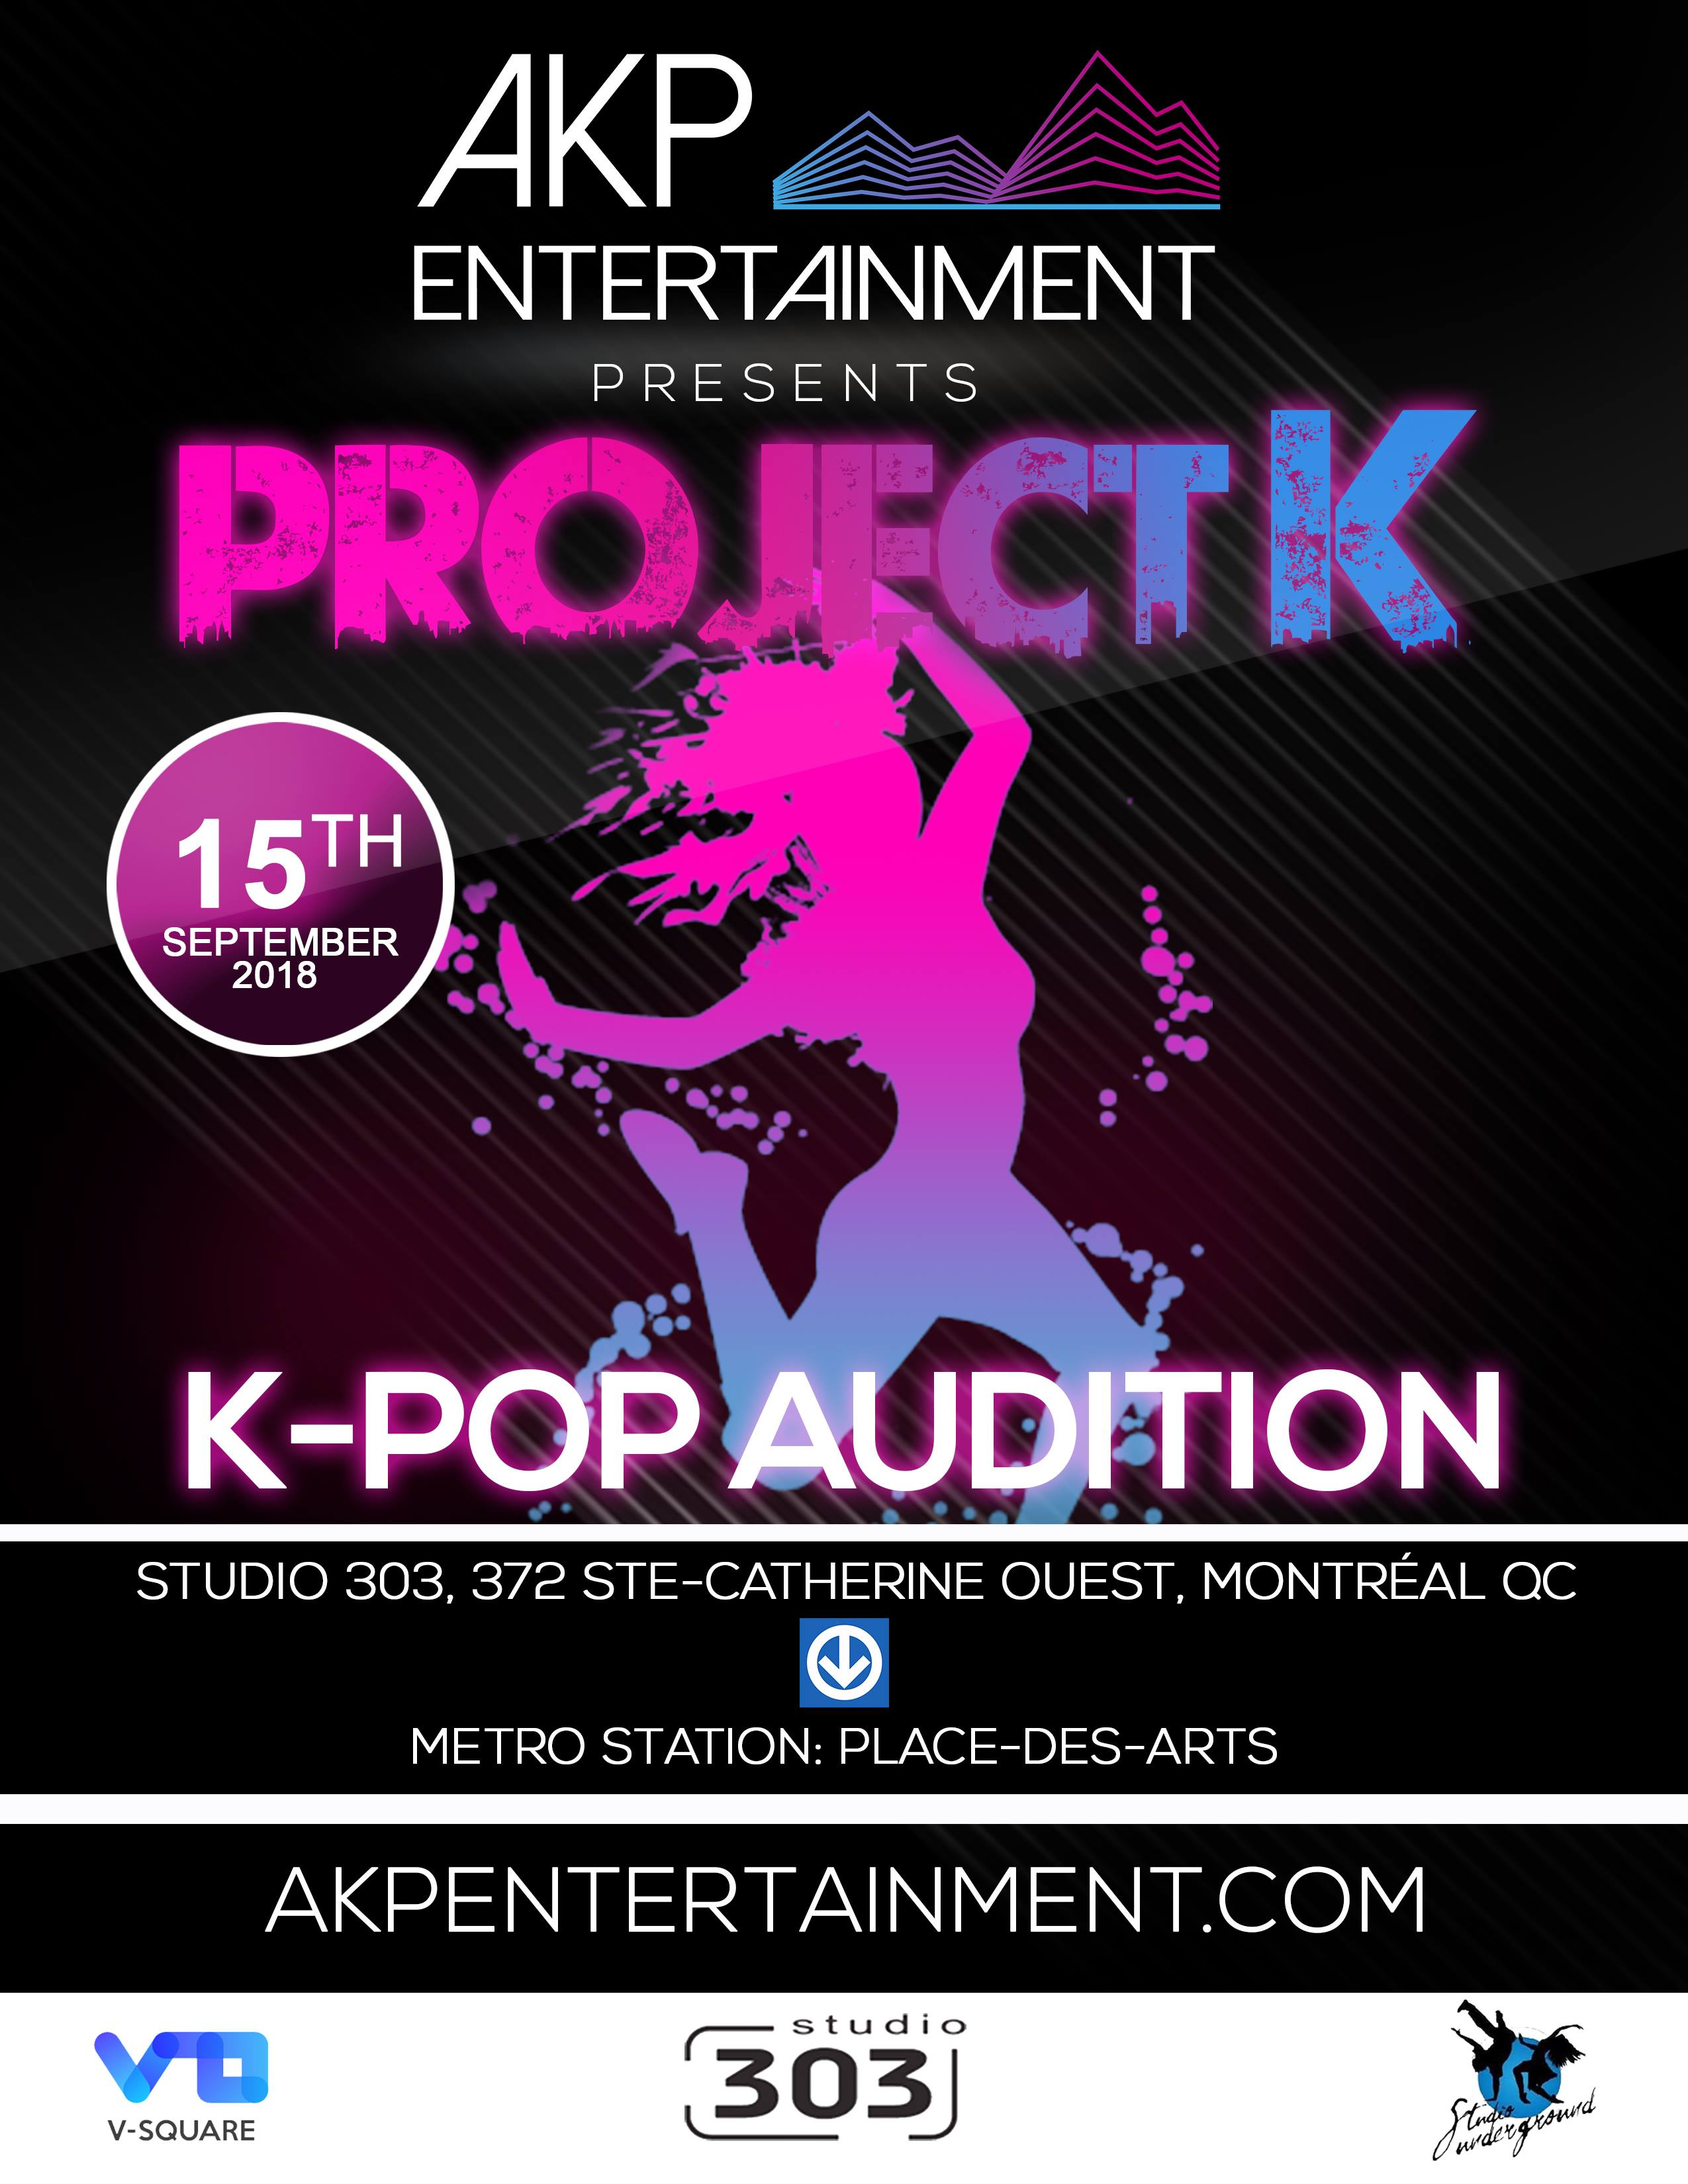 AKP Entertainment - K-pop - Auditions - Montreal